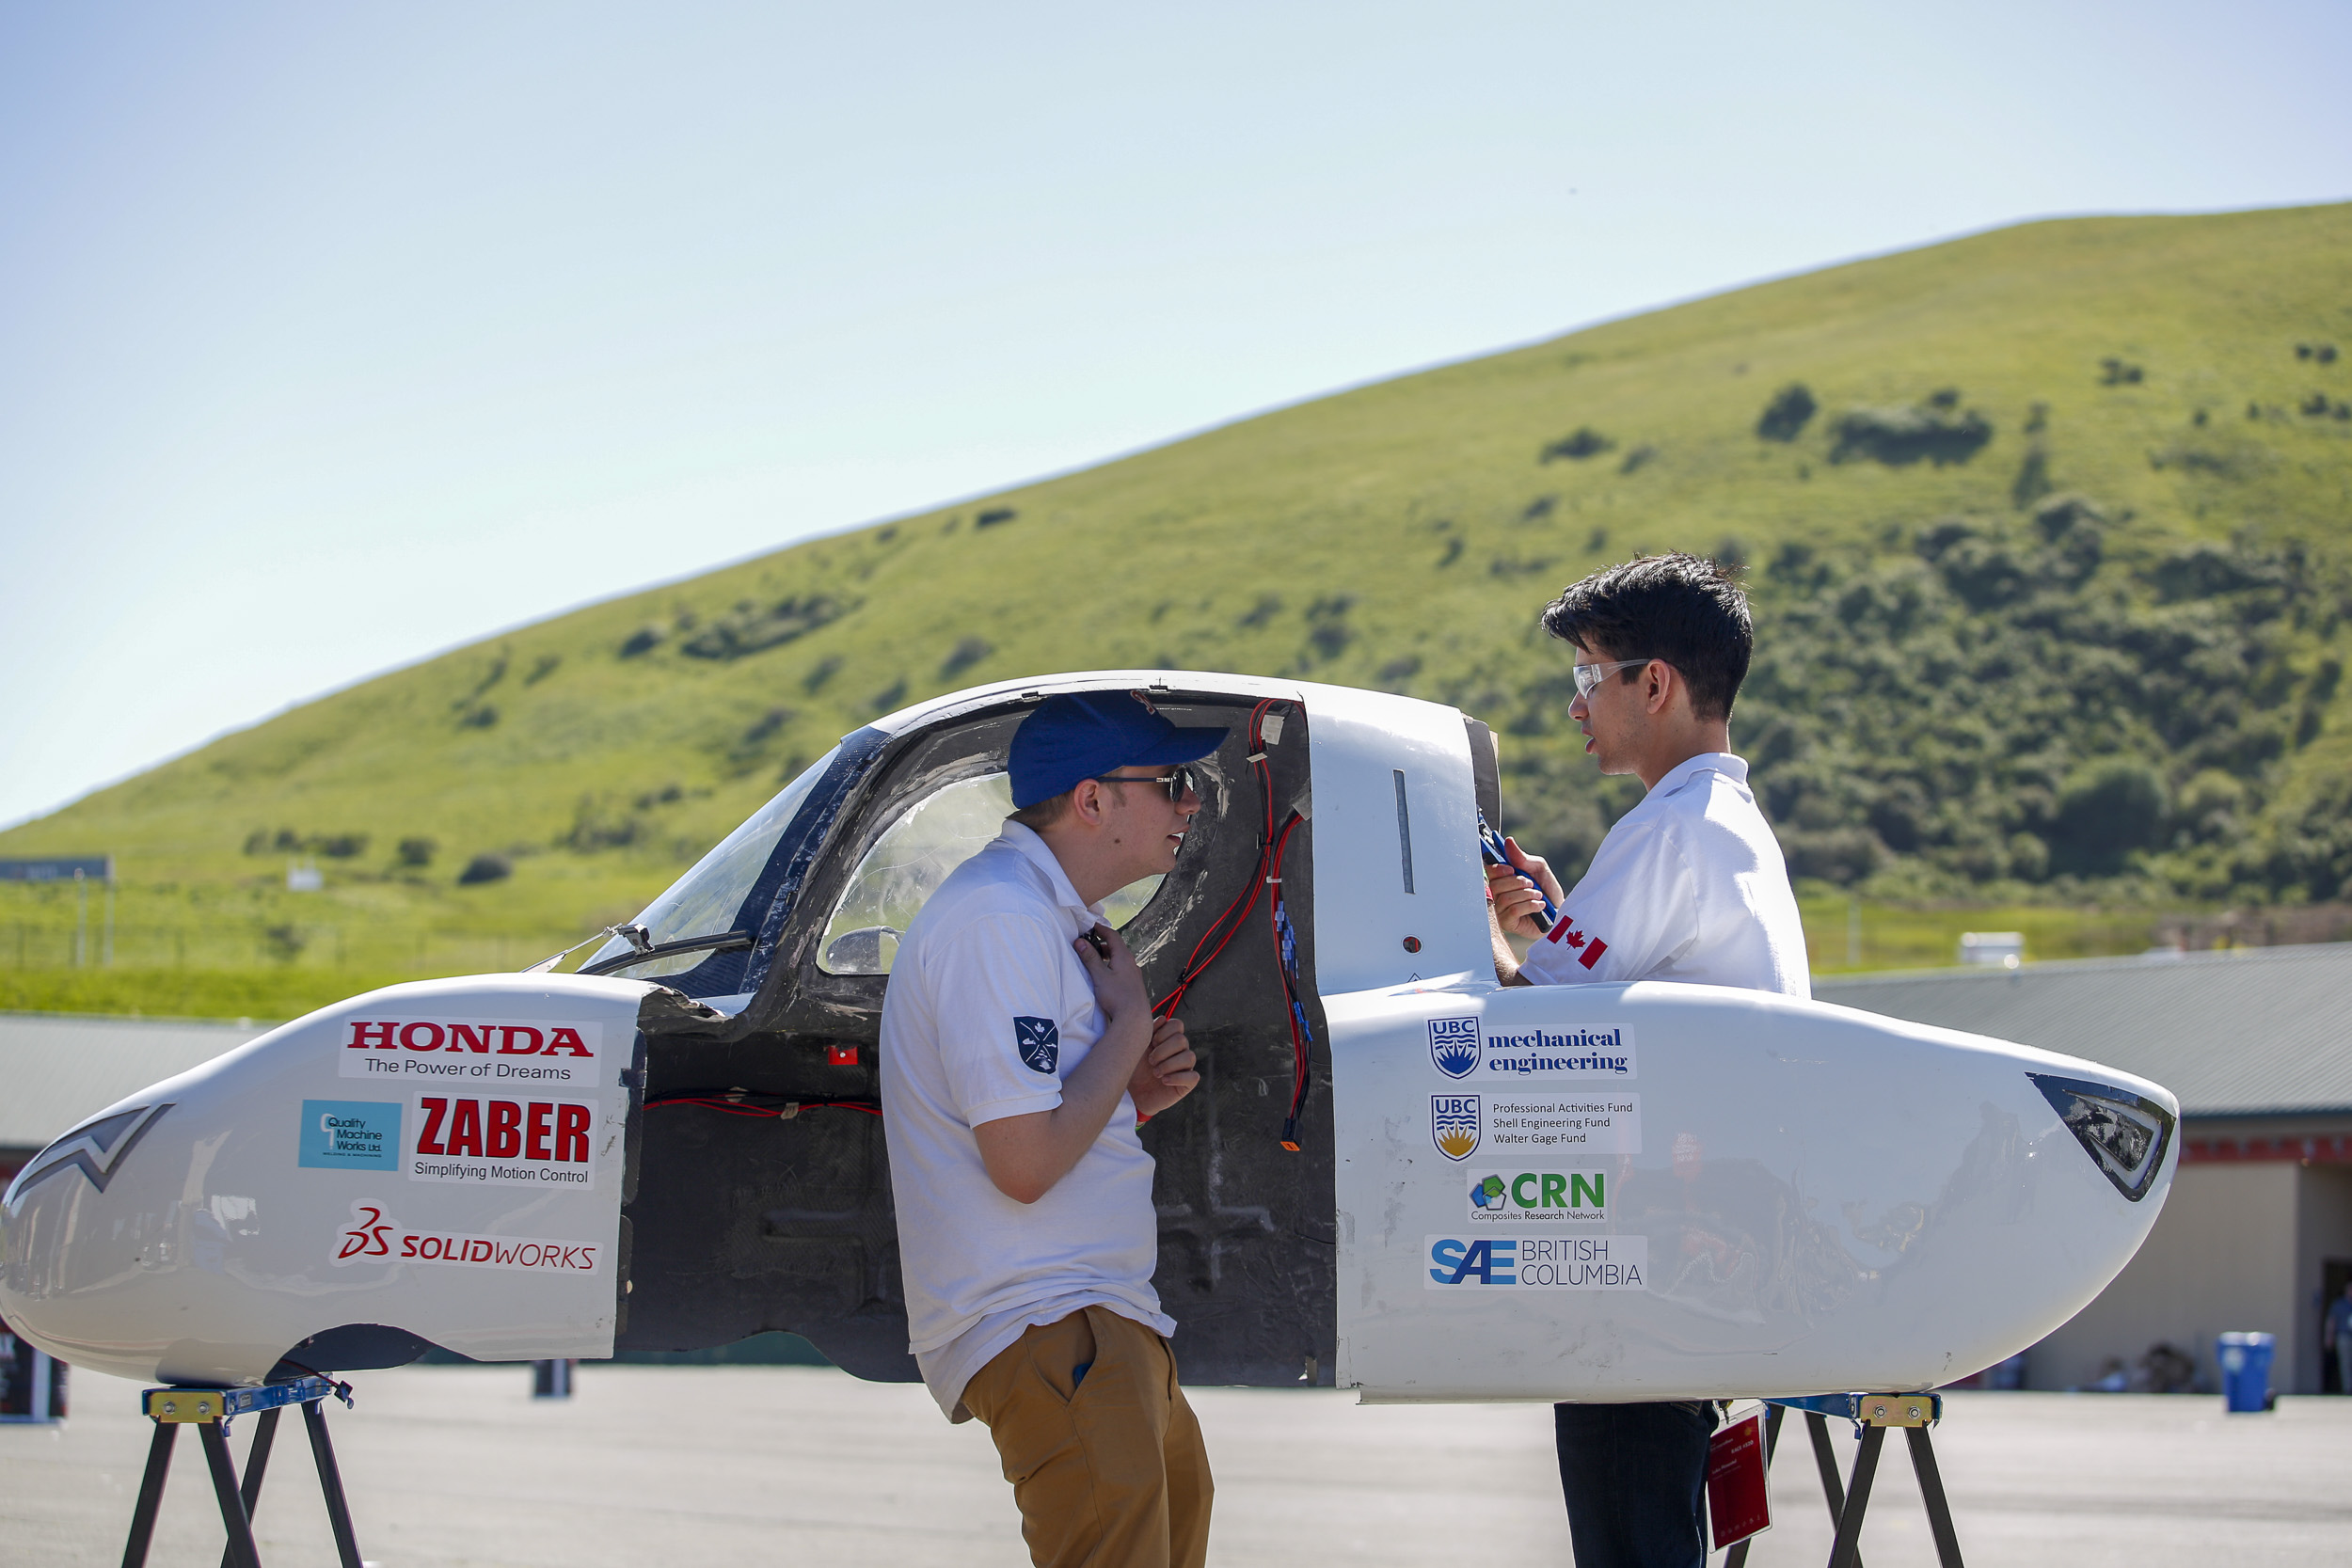 UBC Supermileage Team with their vehicle the Zephyr,  #520,  from University of British Columbia , Vancouver, BC, Canada, competing under the UrbanConcept - Gasoline category work on their car near the paddock during day two of Shell Make the Future at Sonoma Raceway, Friday, April 20, 2018 in Sonoma, Calif.